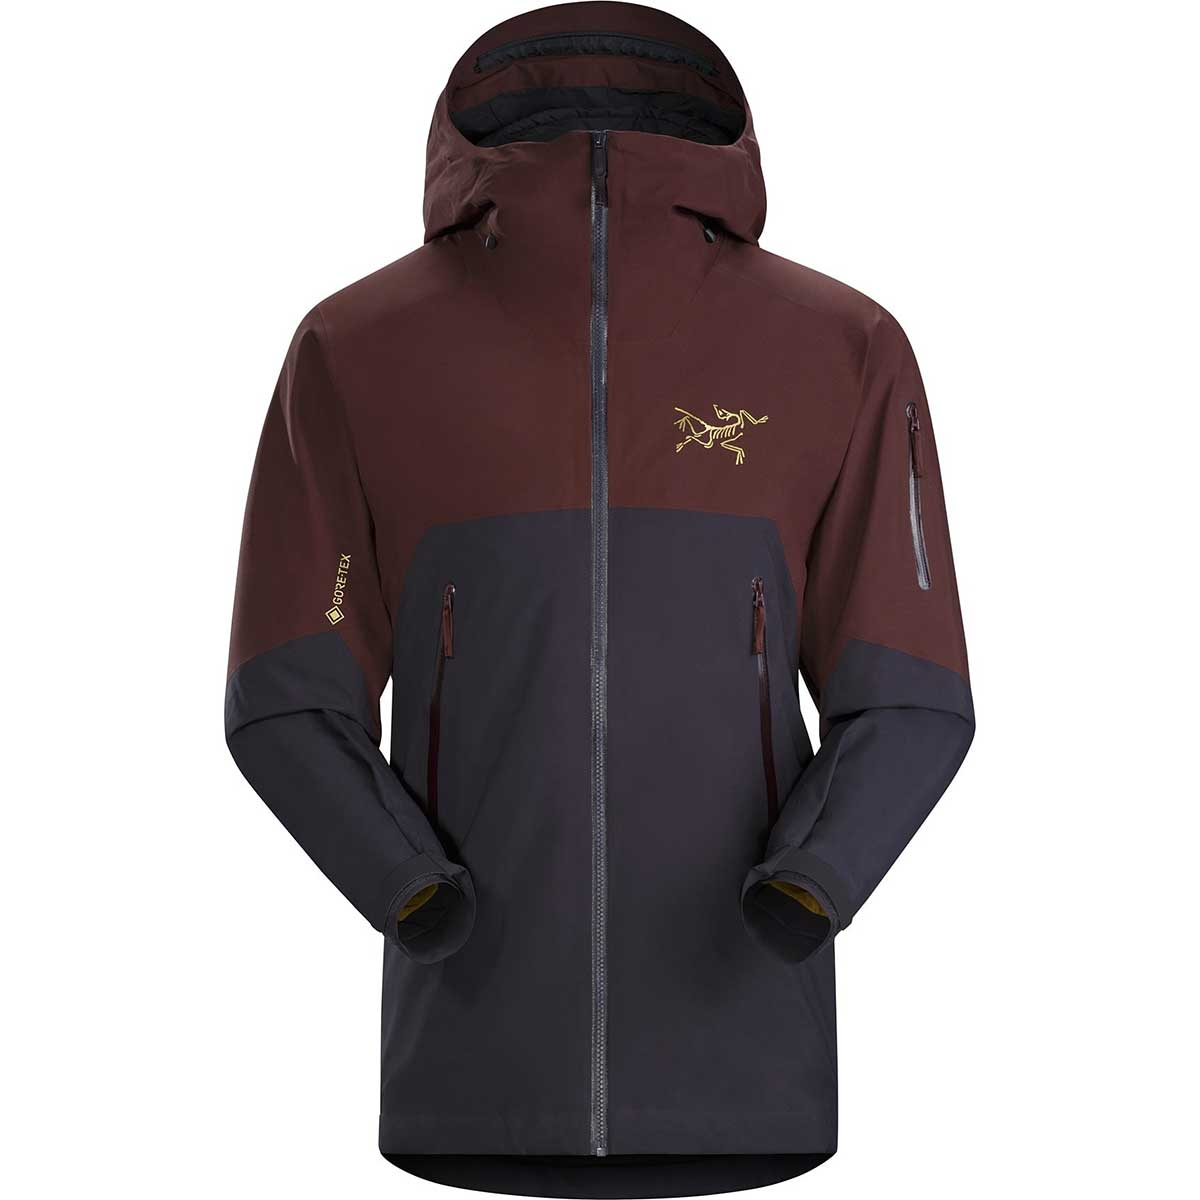 Arcteryx men's Rush IS Jacket in Black Baccara front view